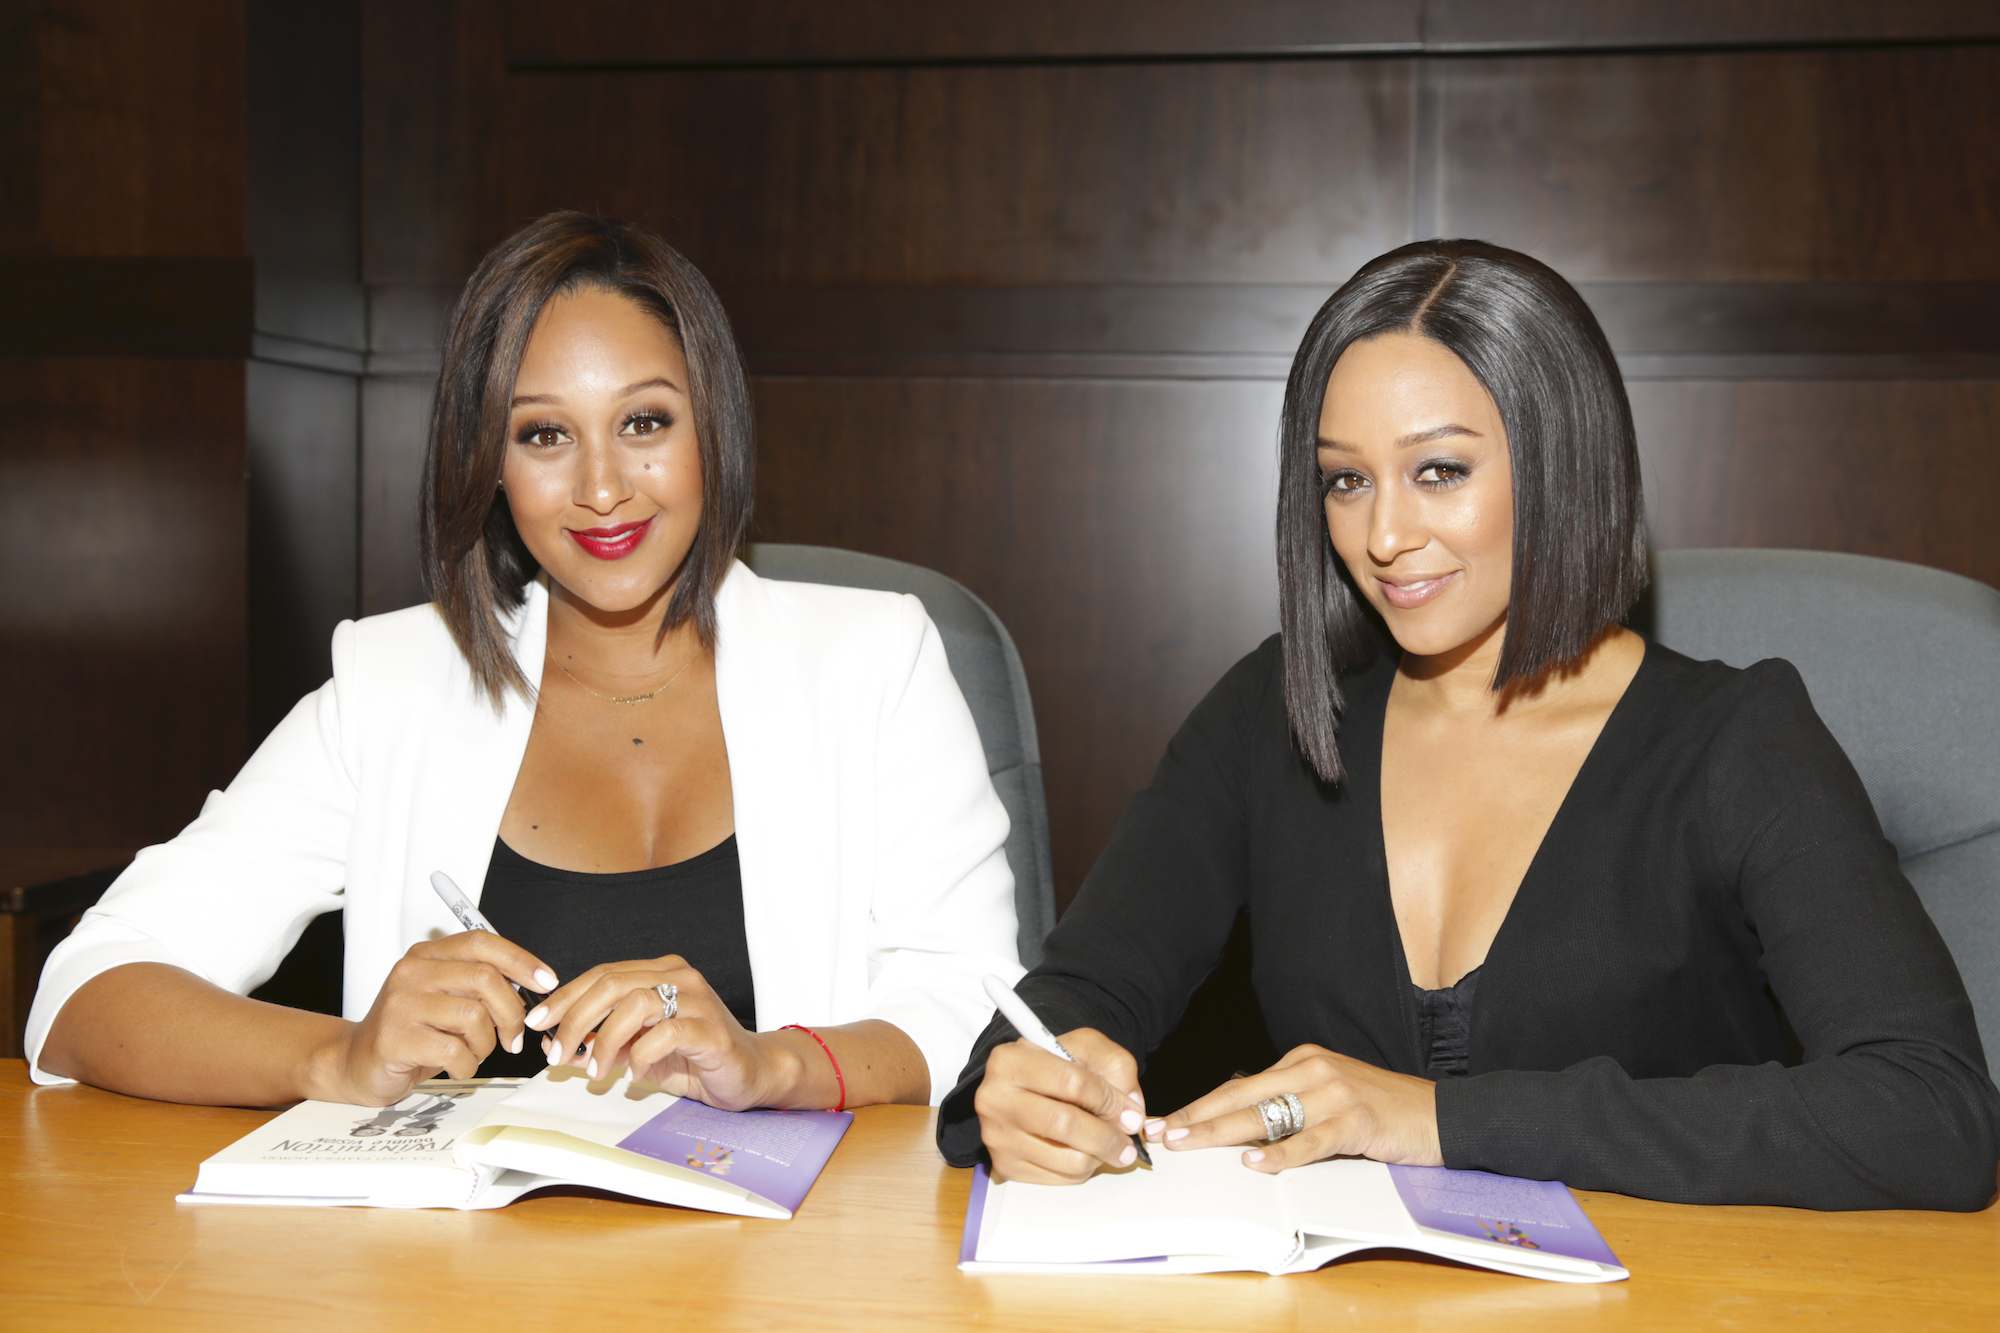 Tamera Mowry and Tia Mowry at their book signing For 'Twintuition' at Barnes & Noble at The Grove on April 21, 2015.